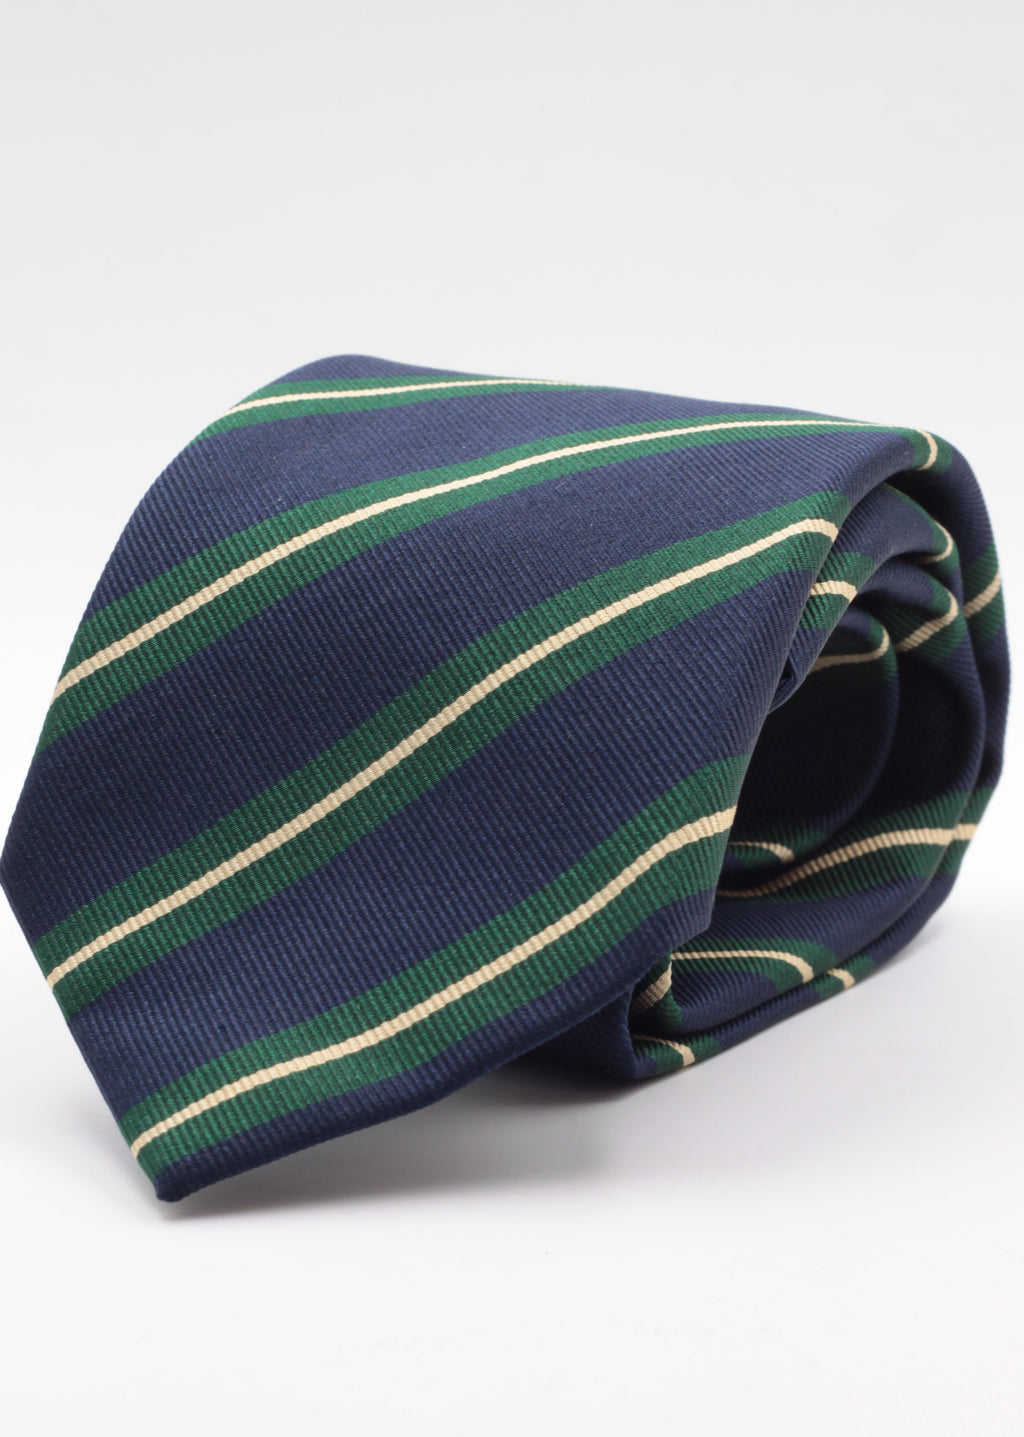 "Holliday & Brown for Cruciani & Bella 100% Silk Jacquard  Regimental ""5th Lancers"" Blu navy, Green and Ivory stripe tie Handmade in Italy 8 cm x 150 cm"